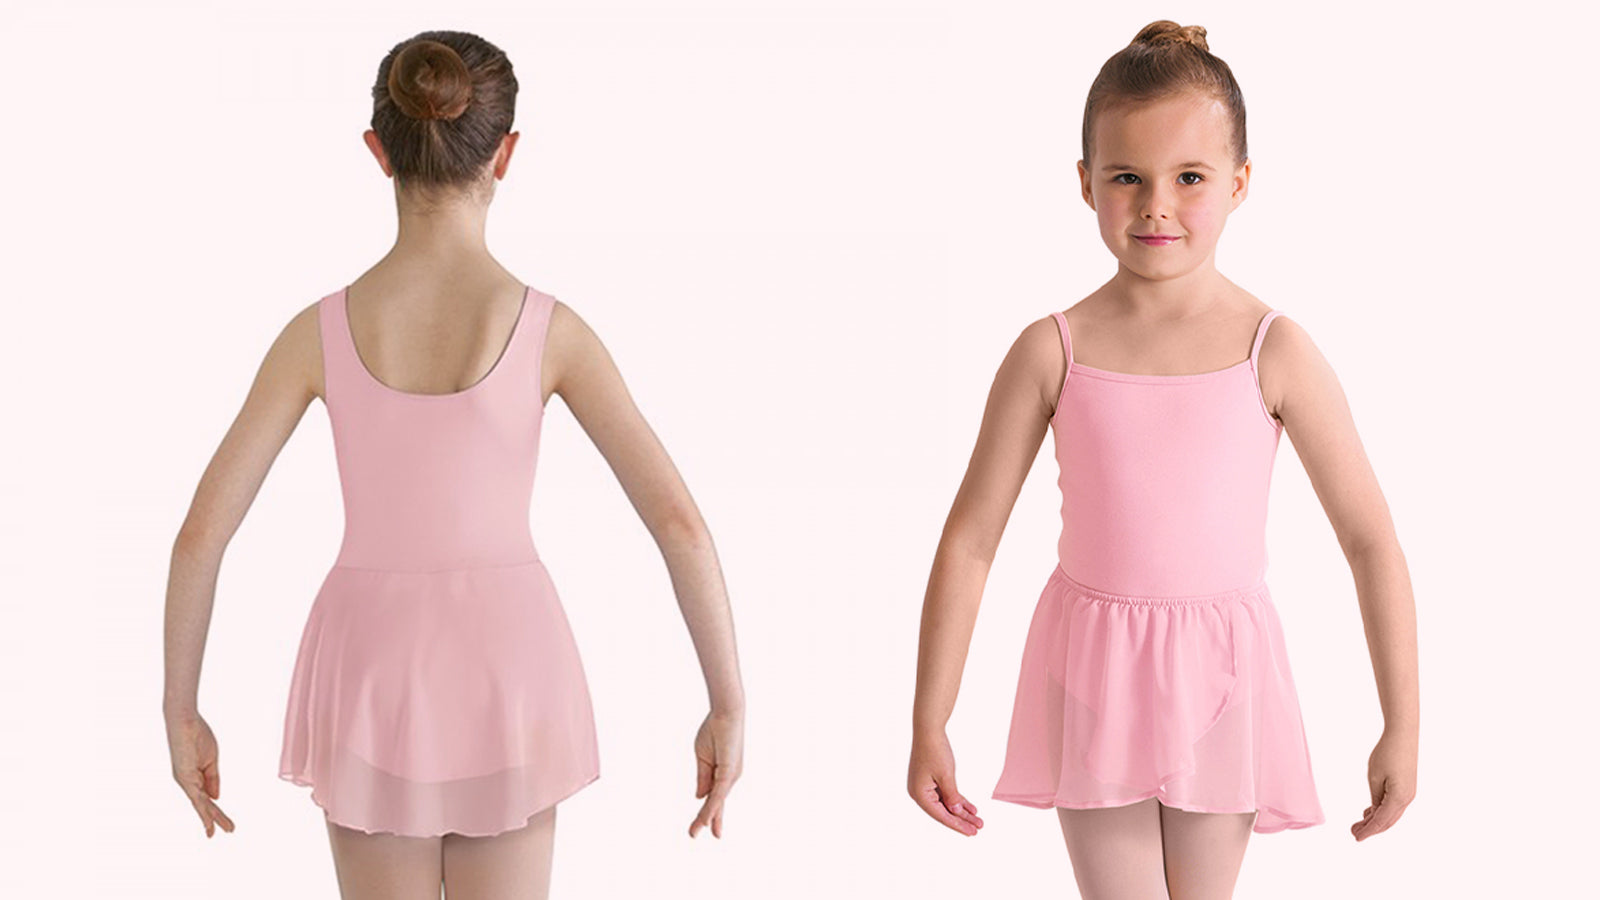 A front and back view of a young dancer wearing a pink skirted tank BLOCH leotard